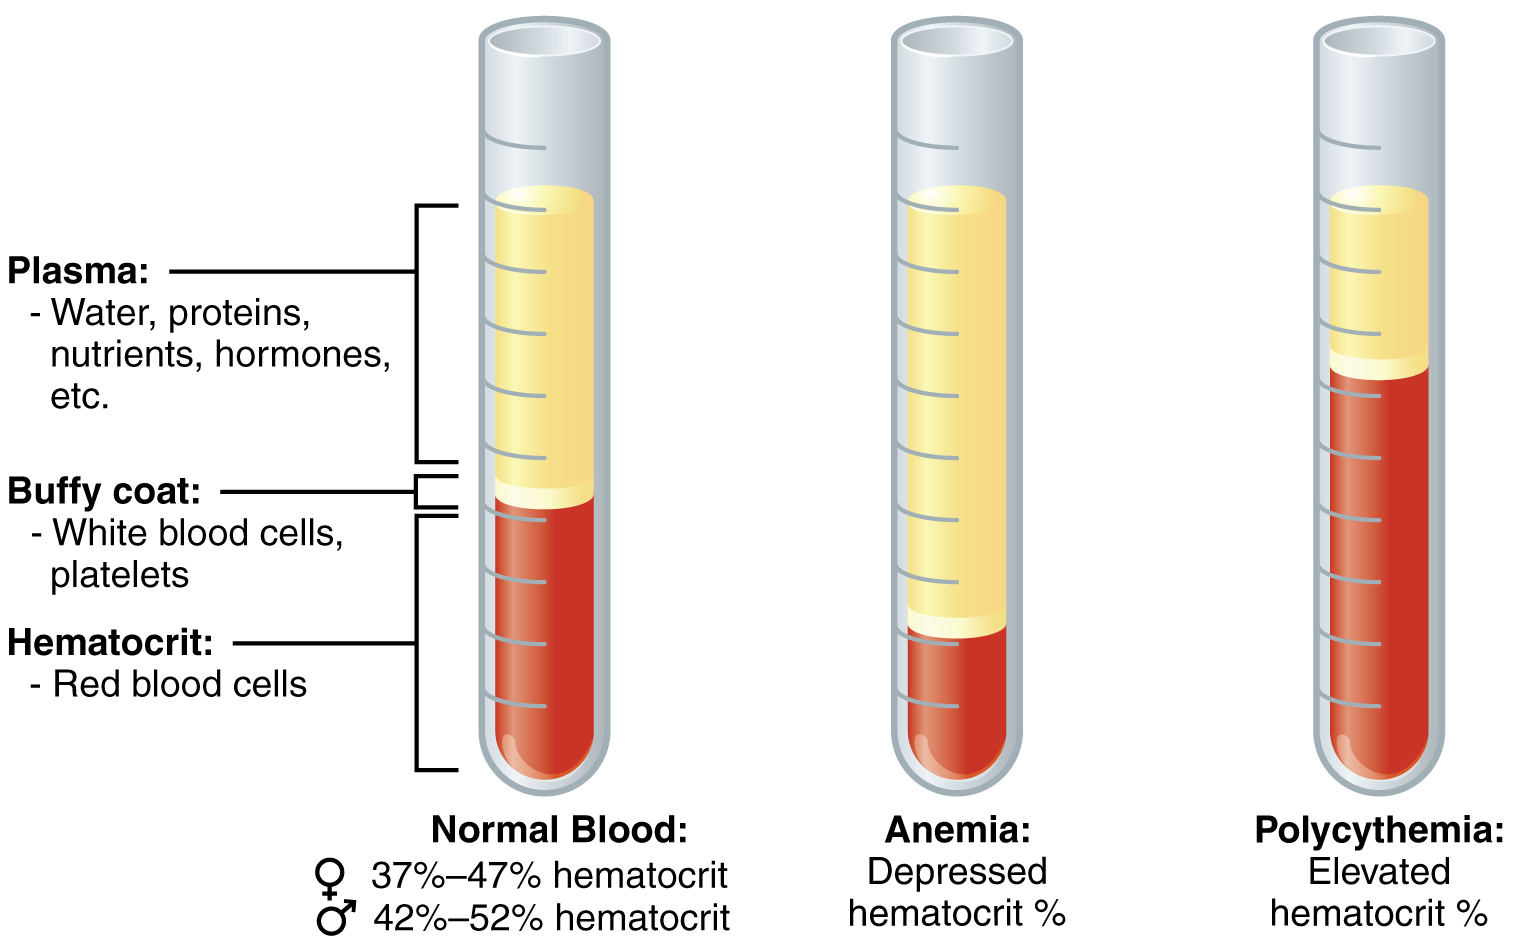 Blood Tests and Lab Analysis